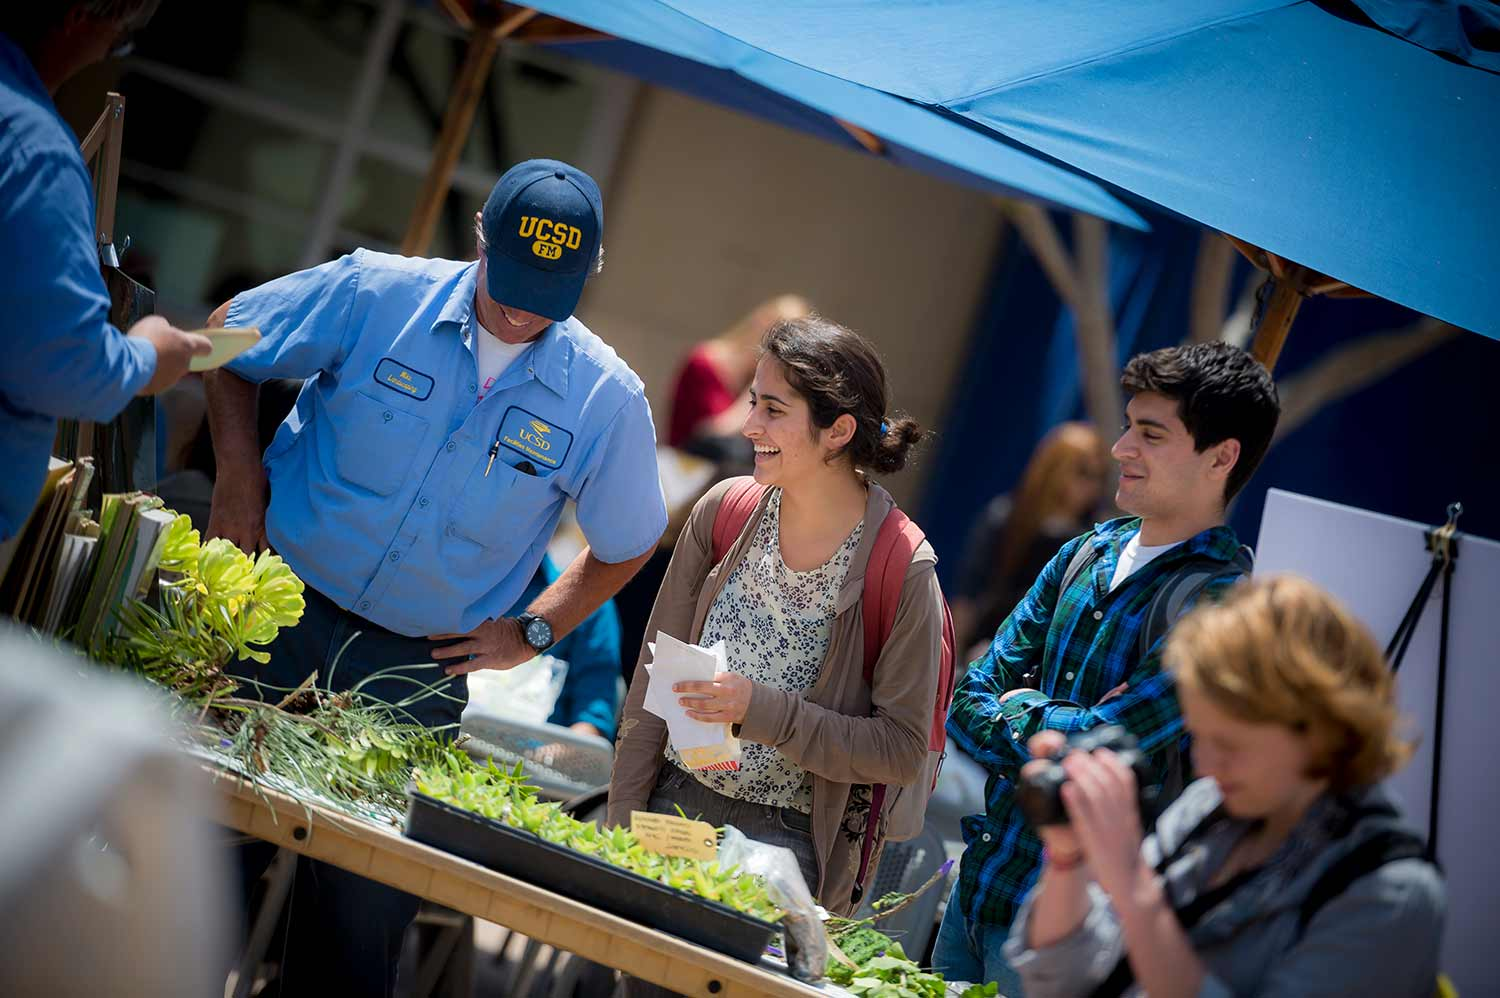 UC San Diego celebrates earth month